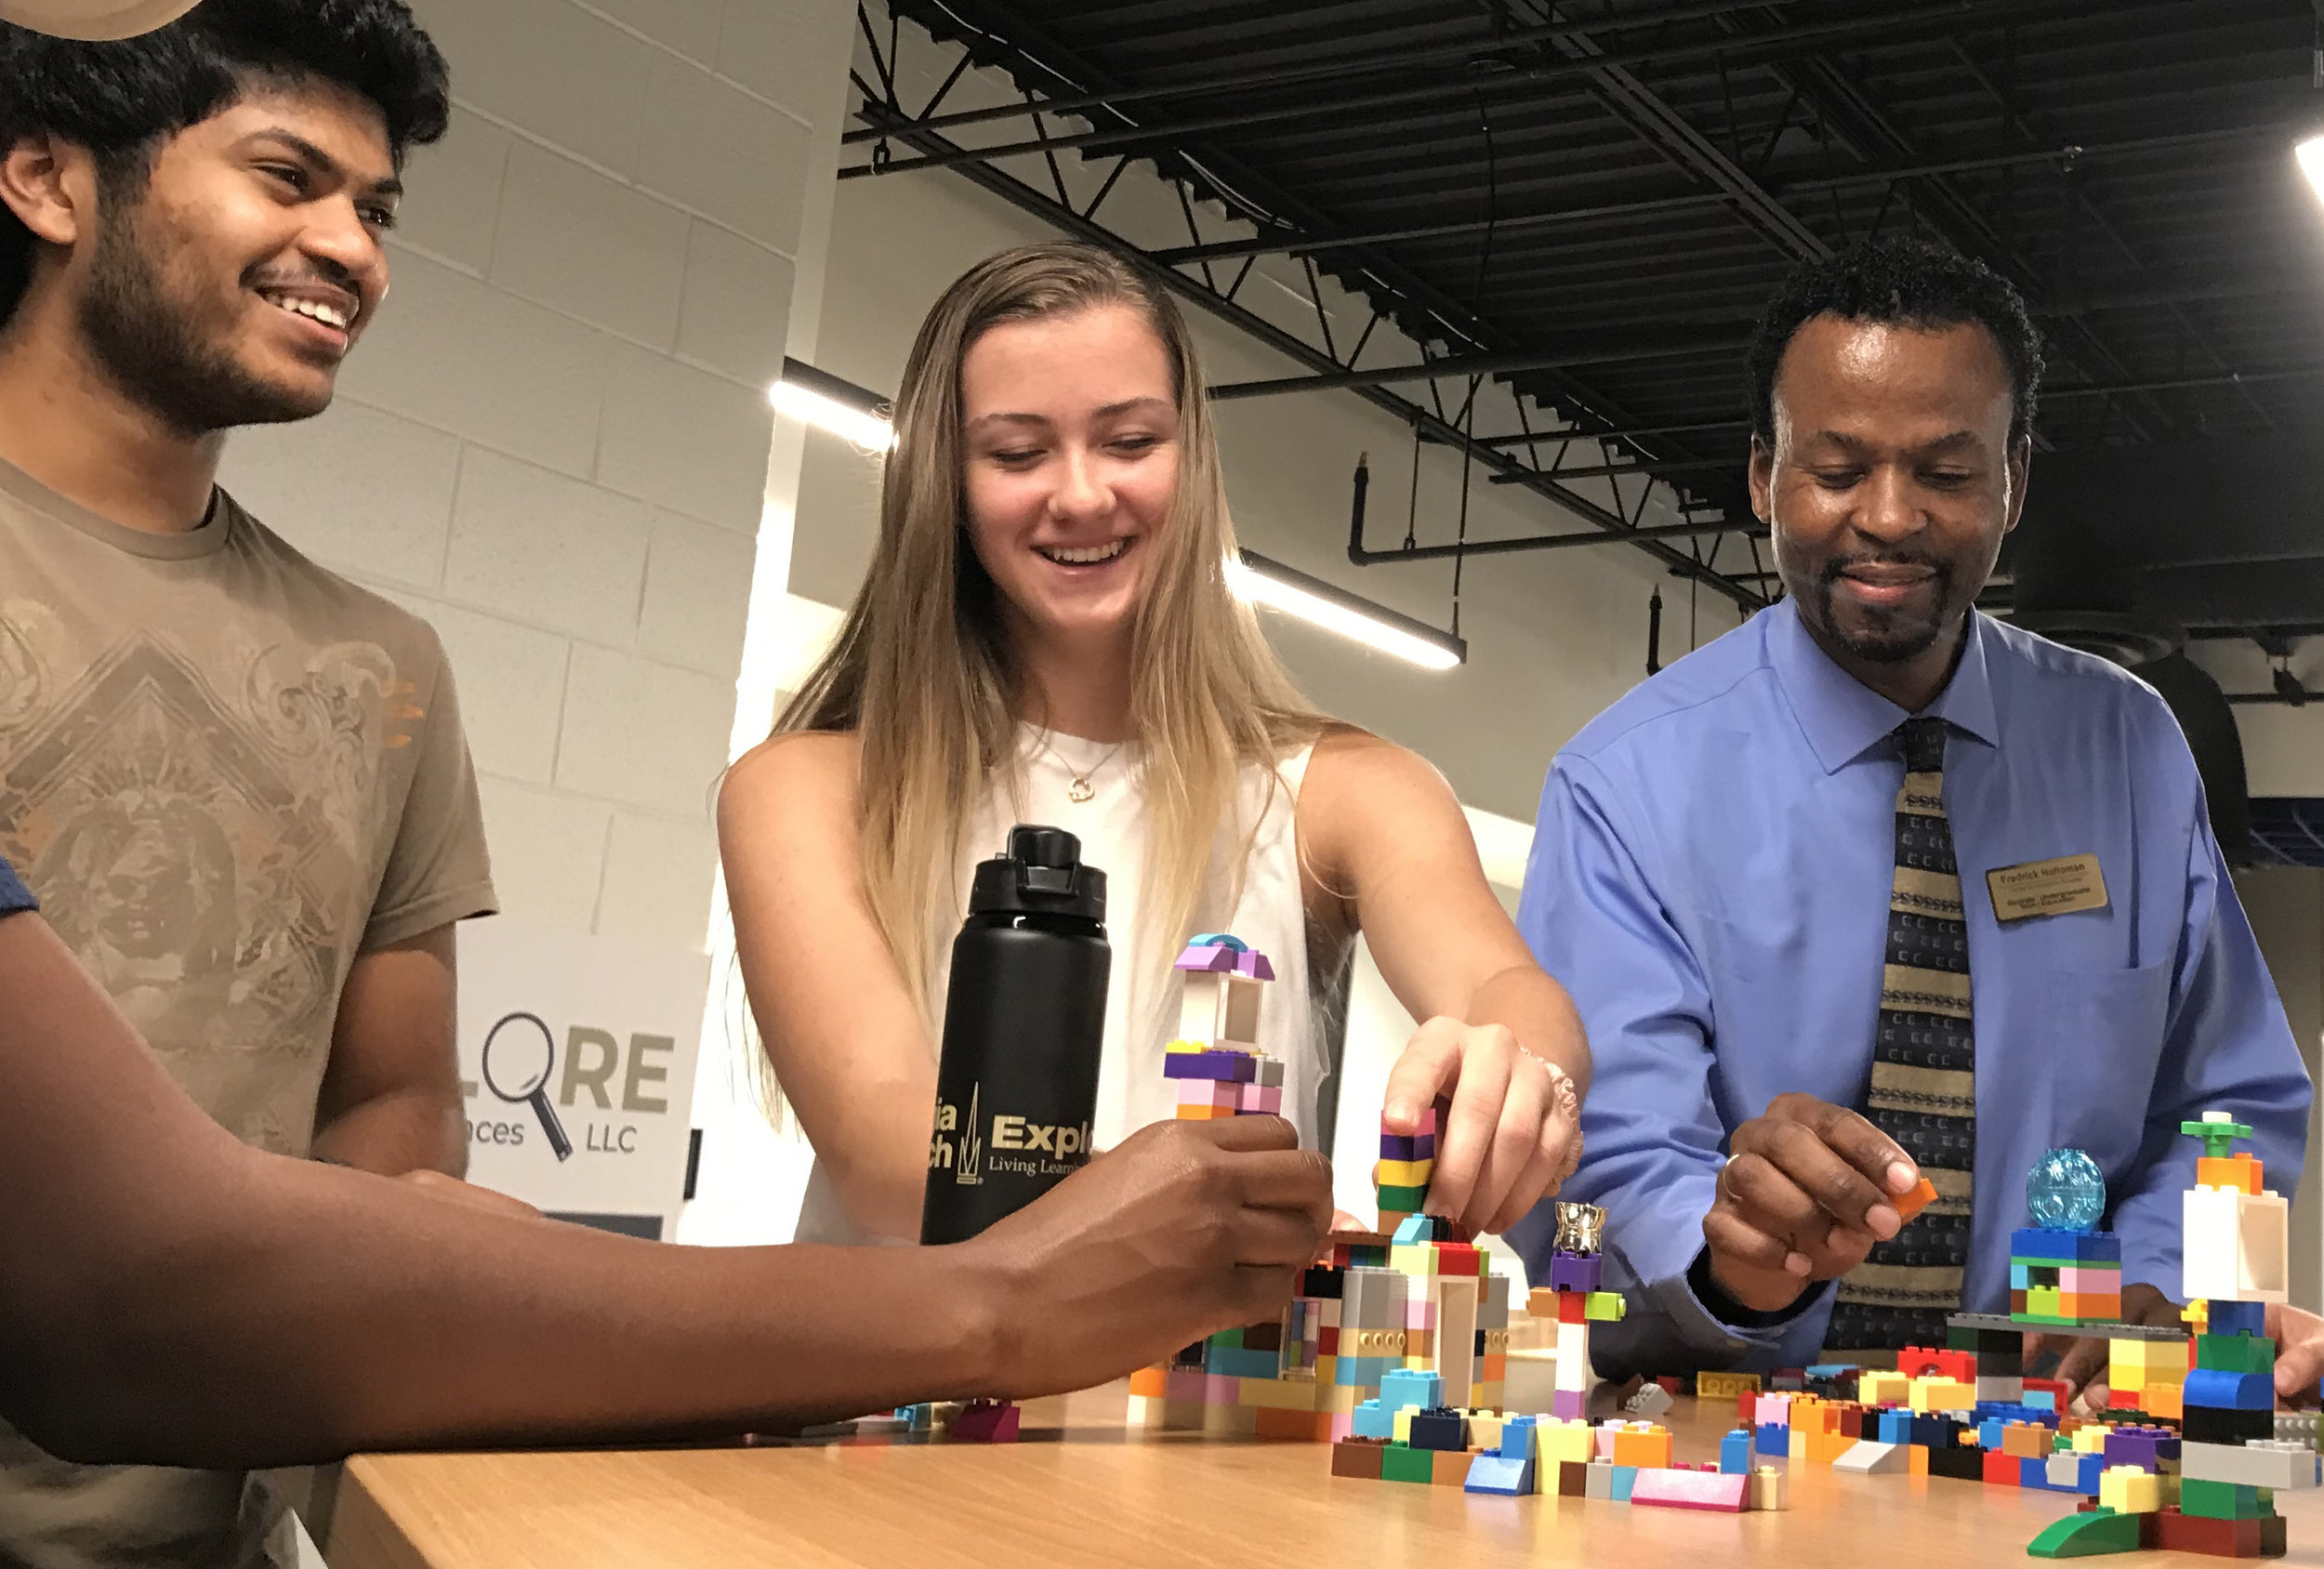 Living Learning Communities at Georgia Tech provide students with the space and curriculum to learn, live, and work together. Here, students and faculty building community through hands-on activities.